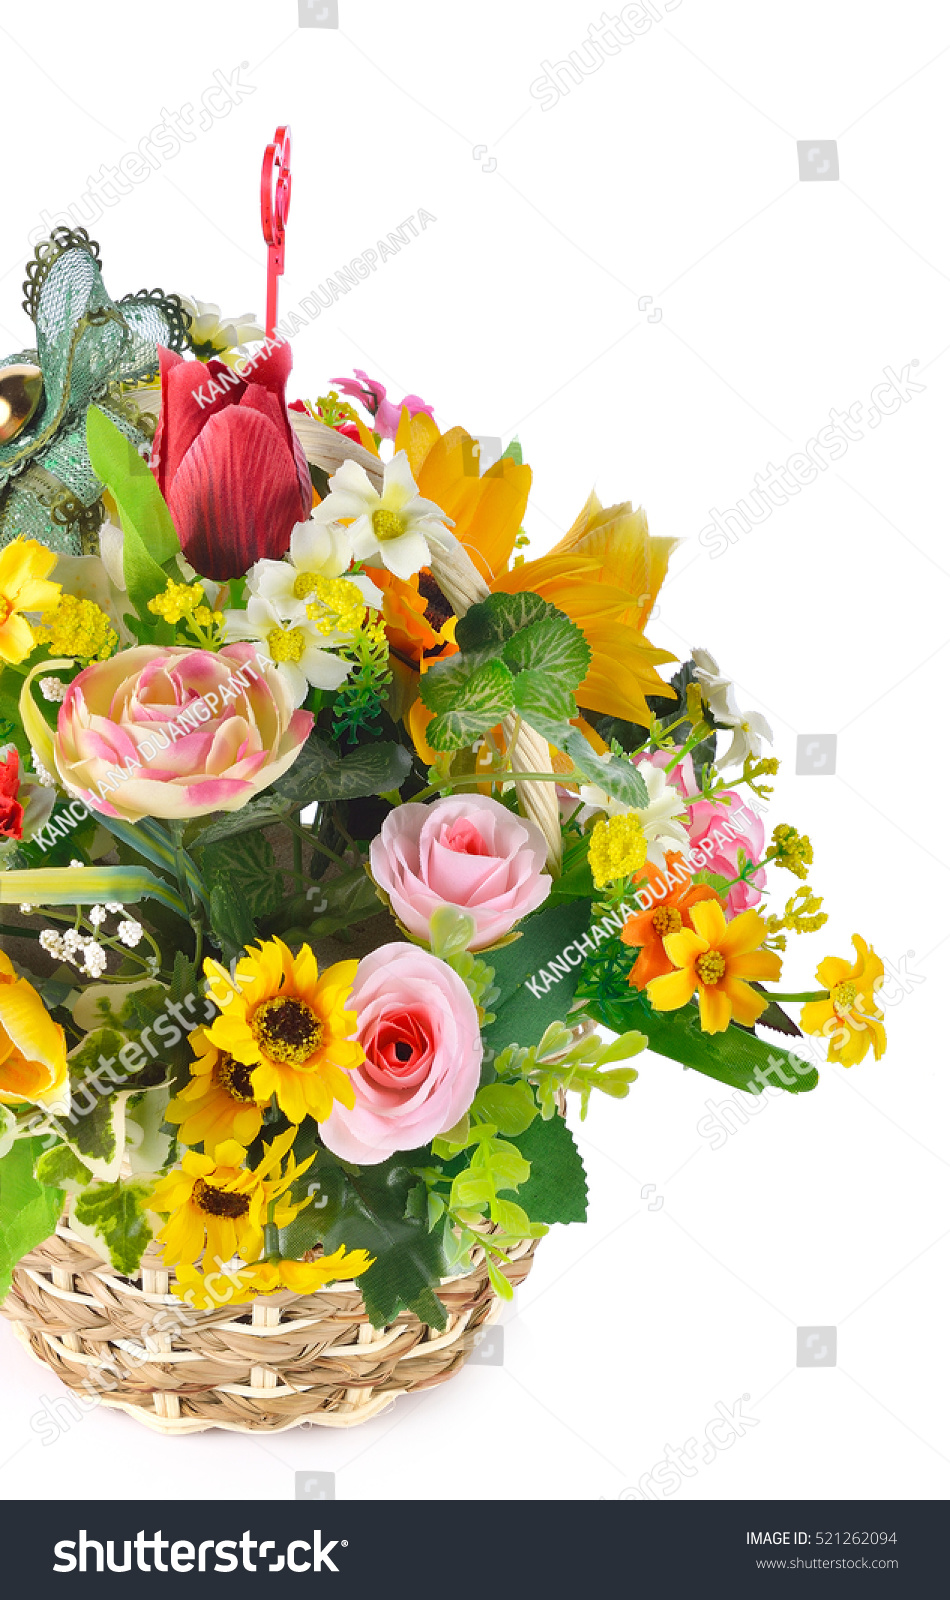 Plastic floral bouquet different flowers on stock photo royalty plastic floral bouquet of different flowers on white background izmirmasajfo